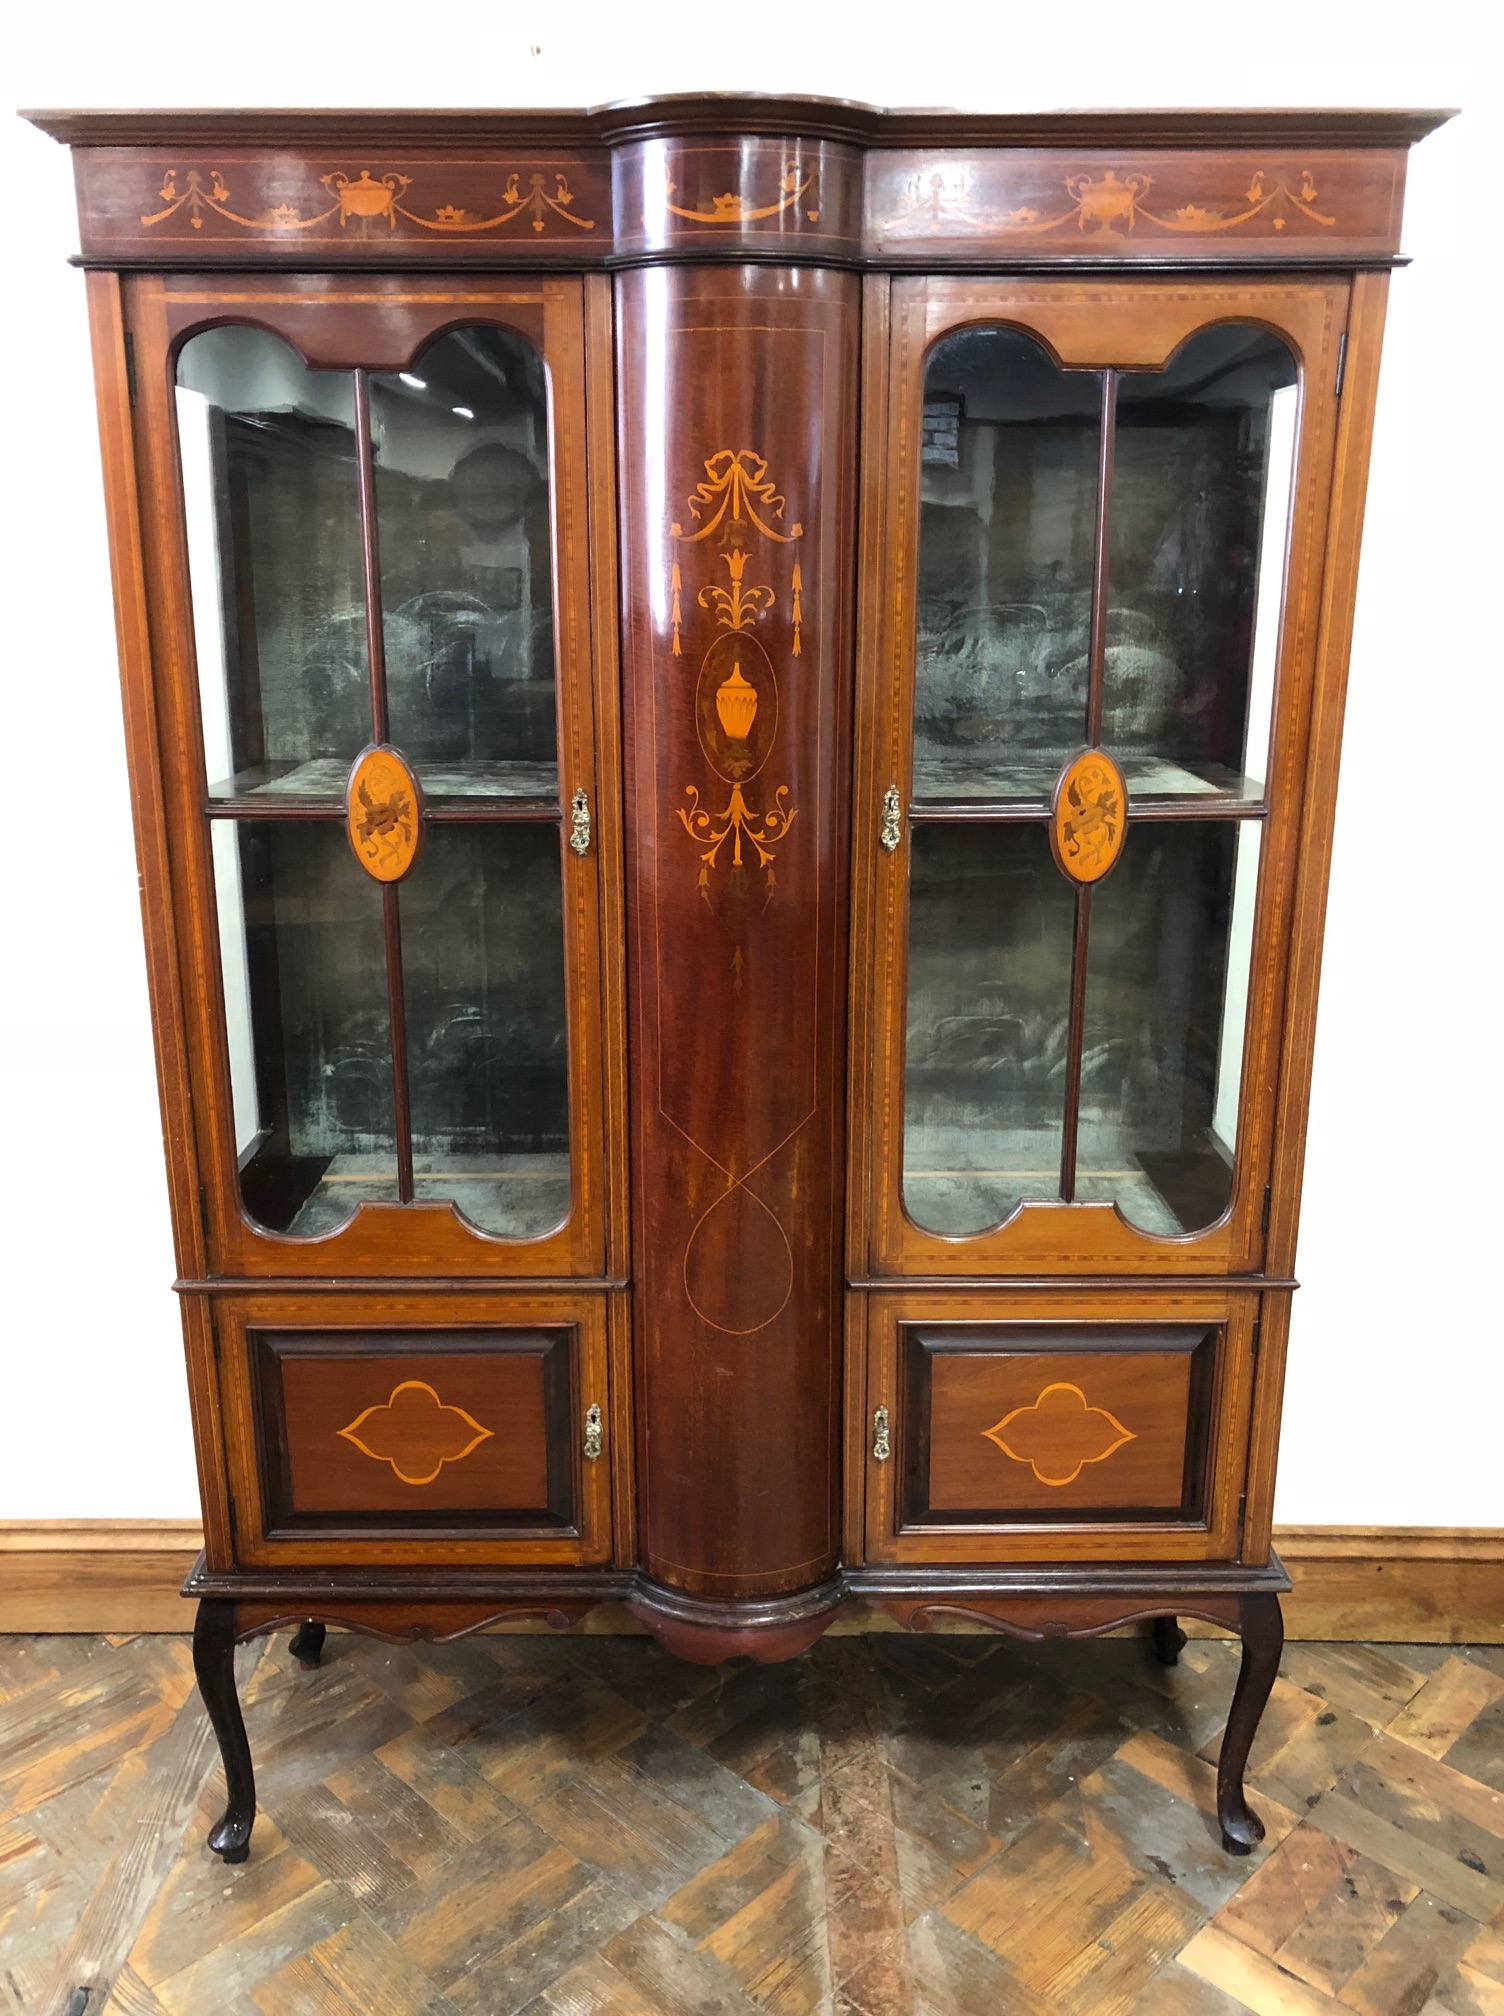 Edwardian Mahogany Inlaid Glass Display Cabinet